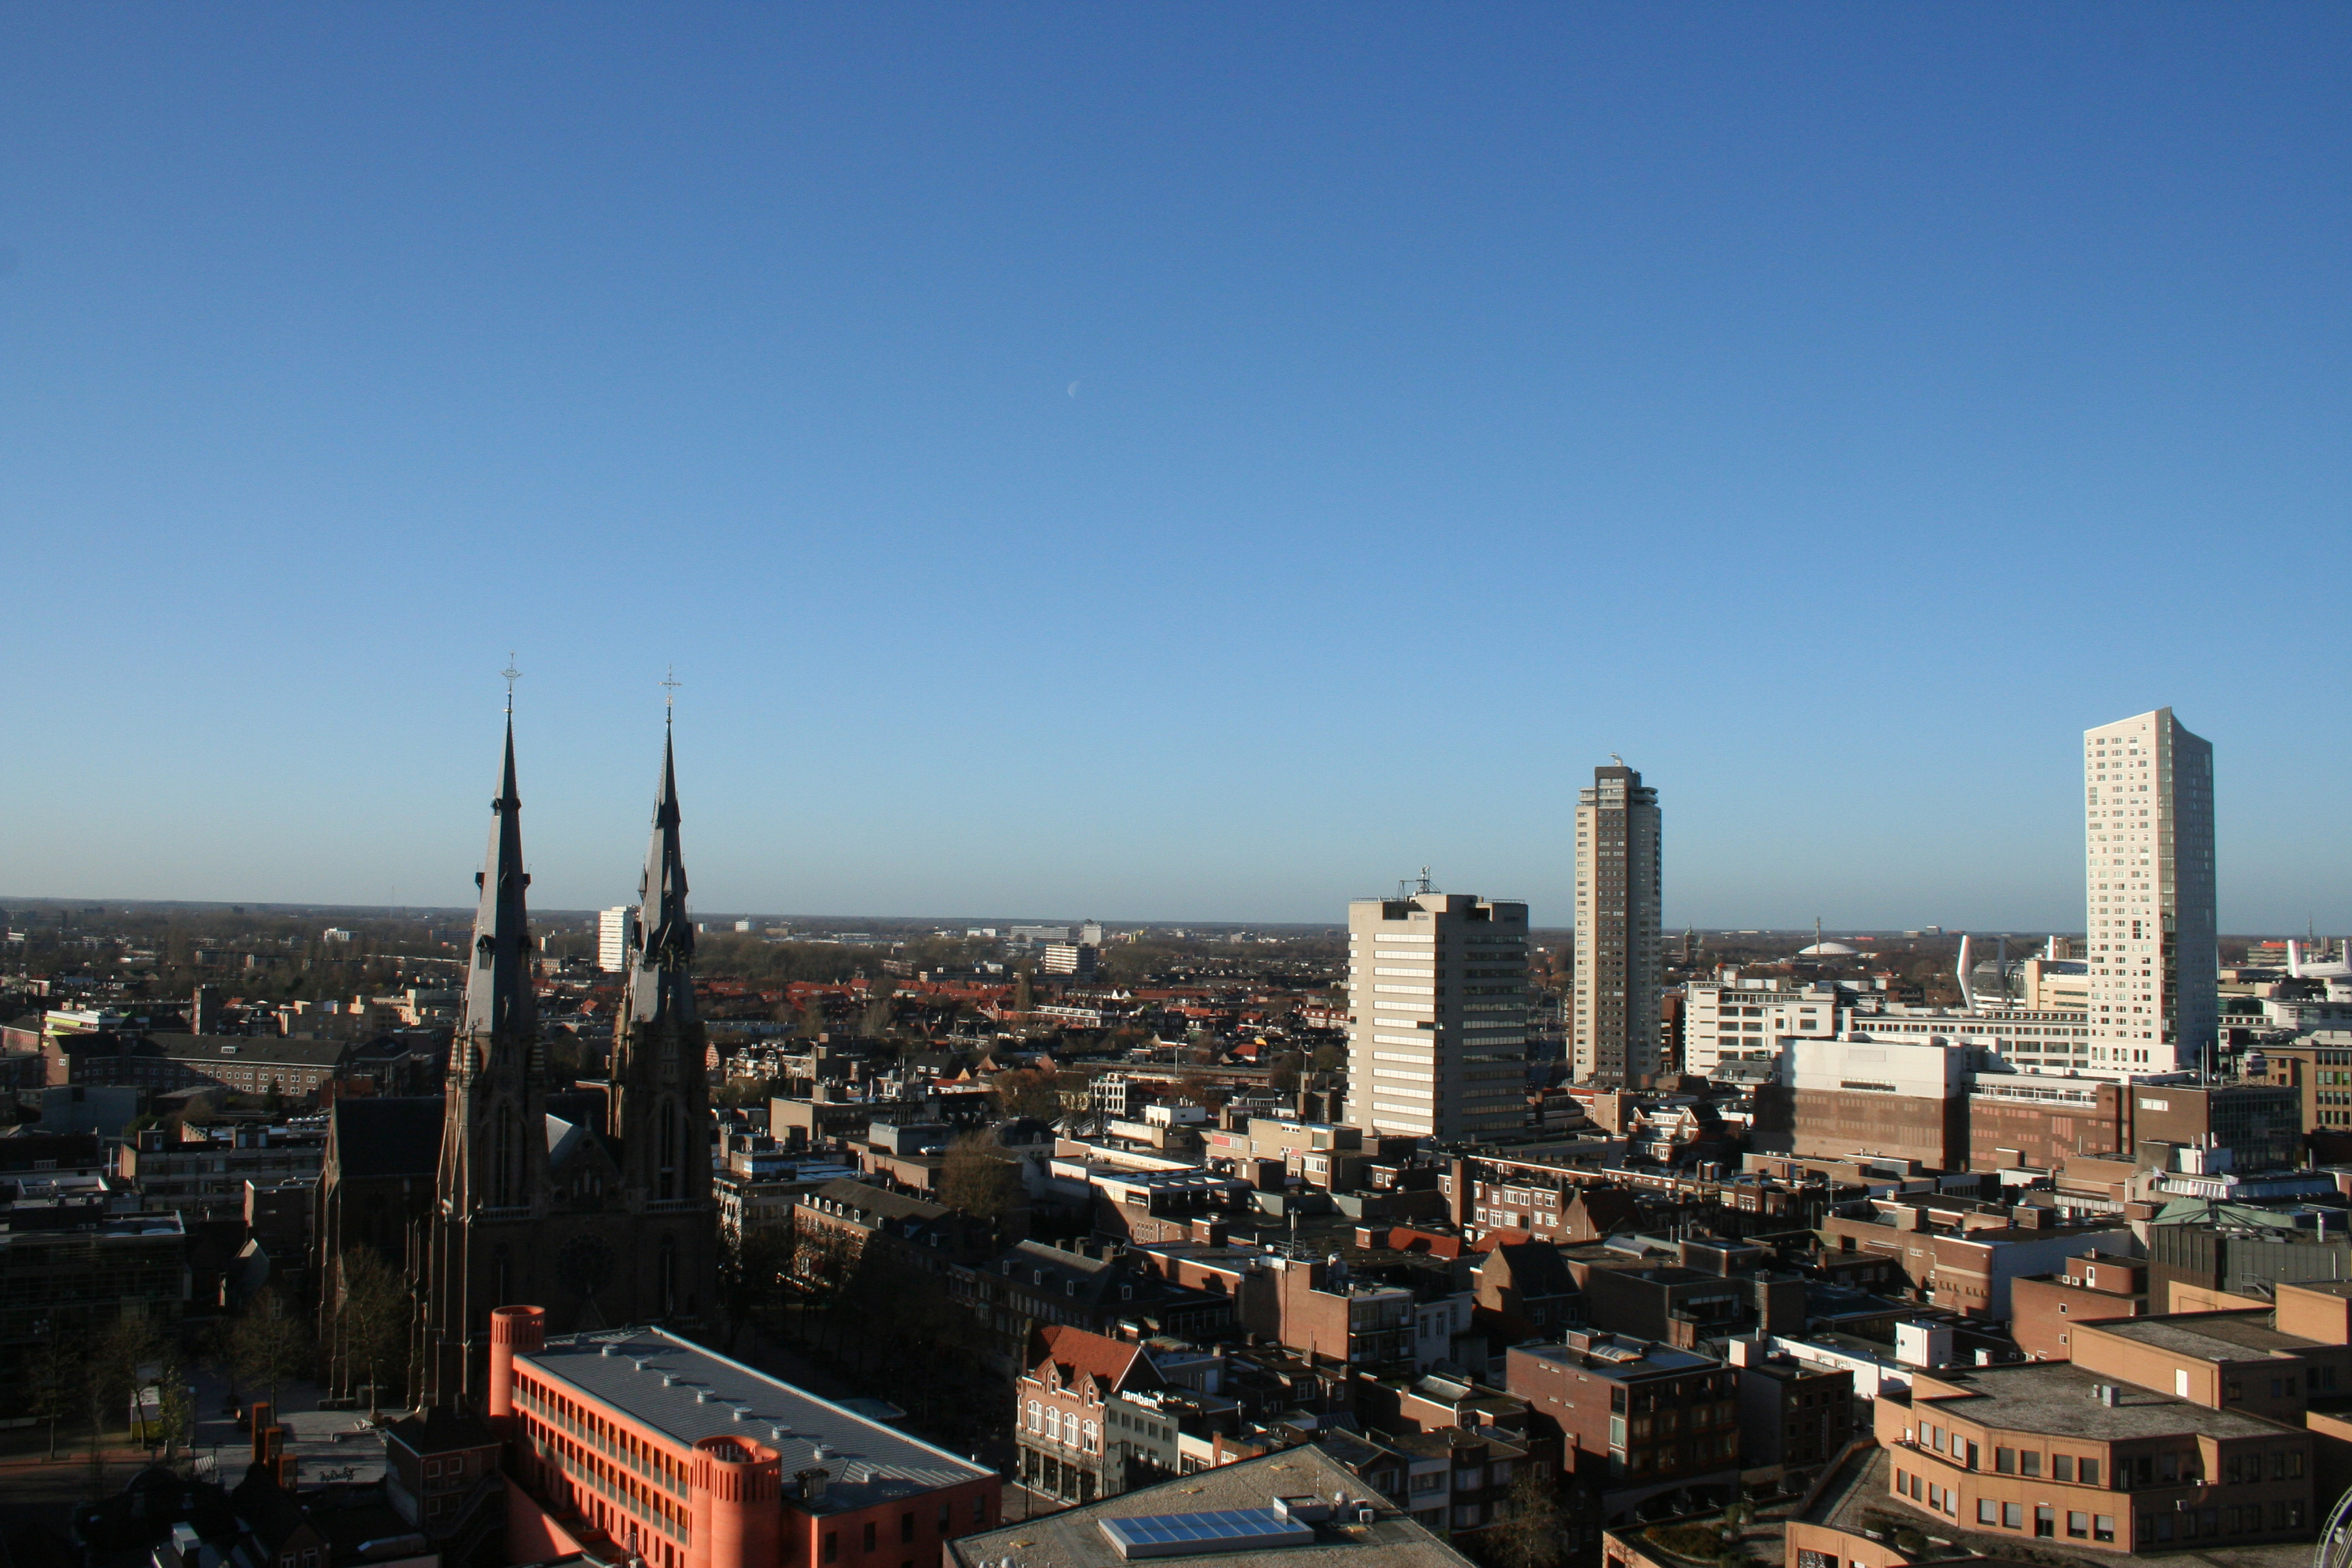 Eindhoven – Industrial, cosmopolitan and tech savvy